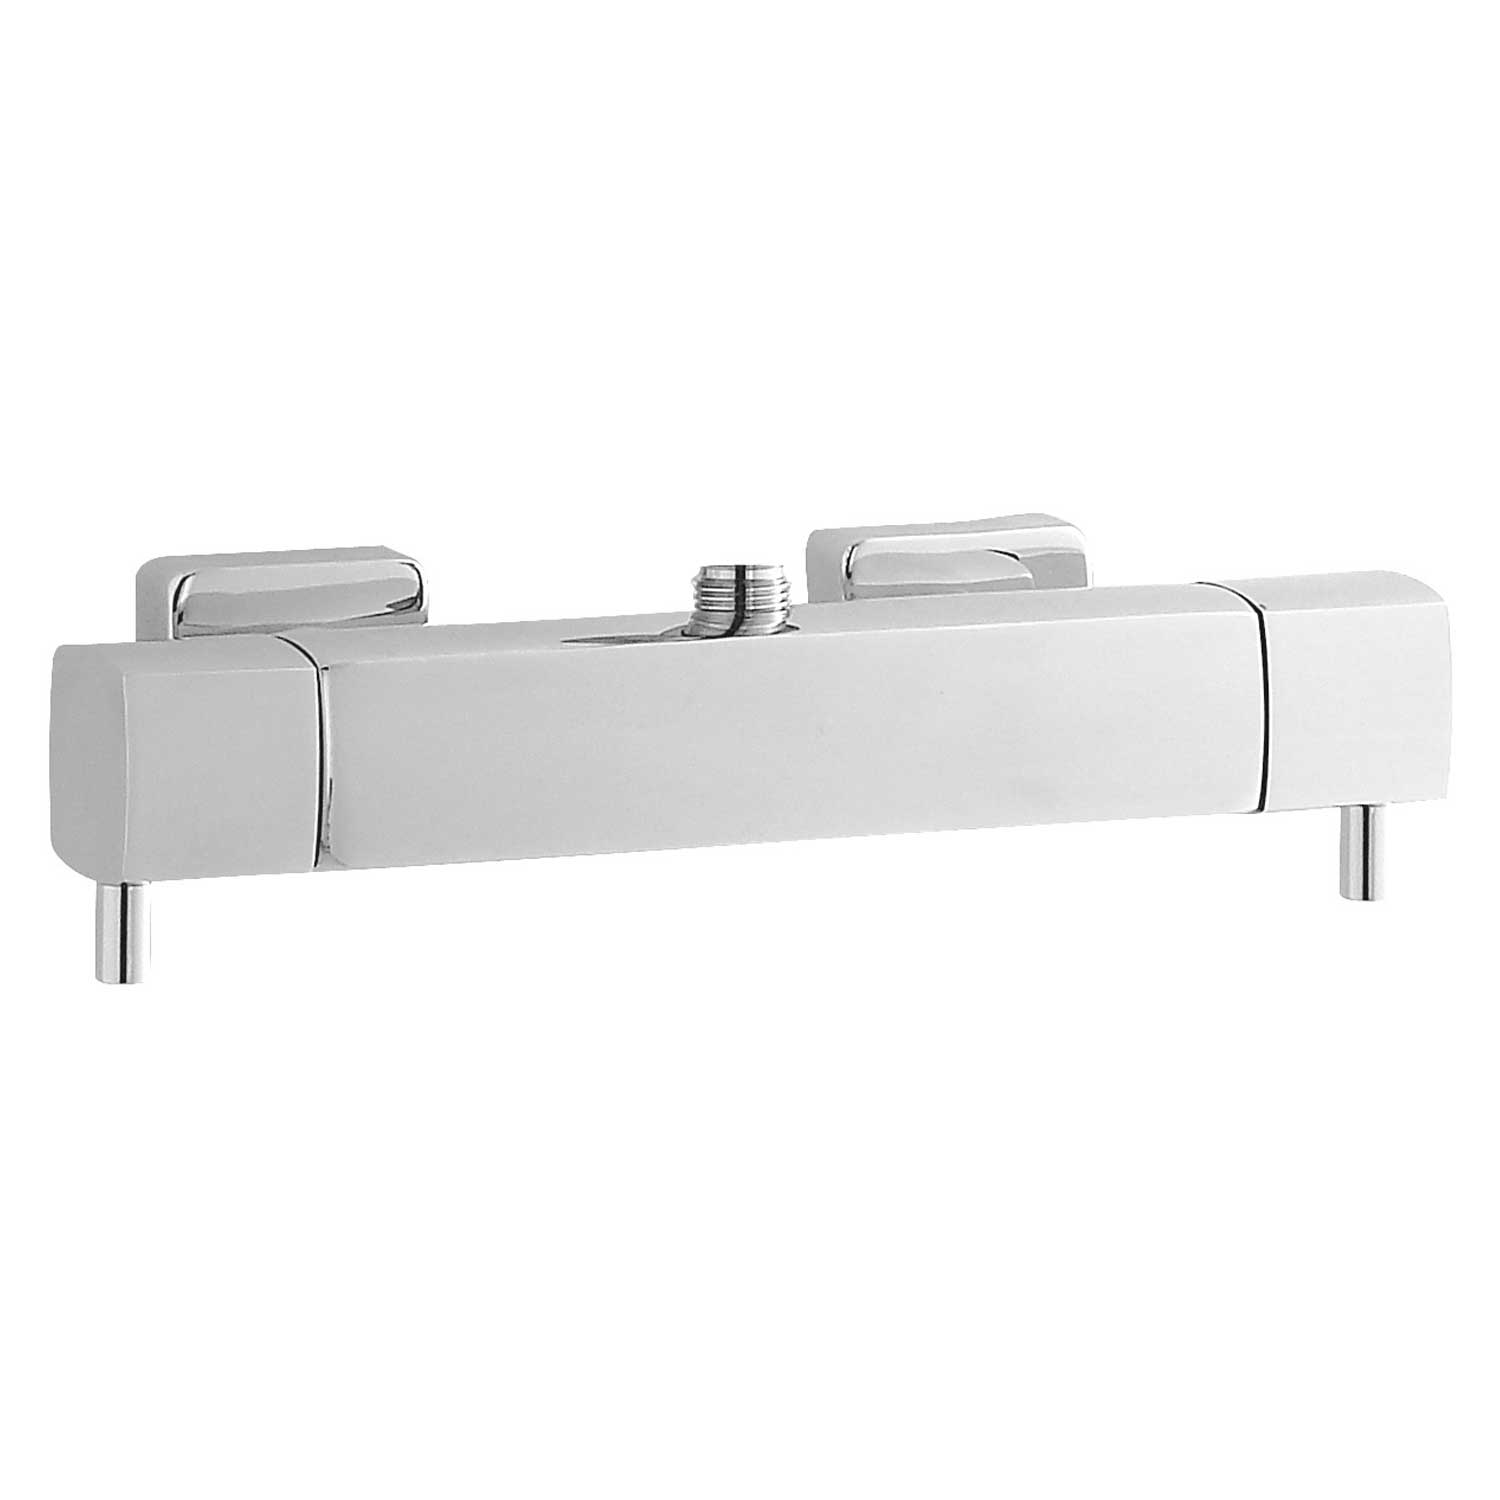 Hudson Reed Quadro Thermostatic Bar Shower Valve Top Outlet - Chrome